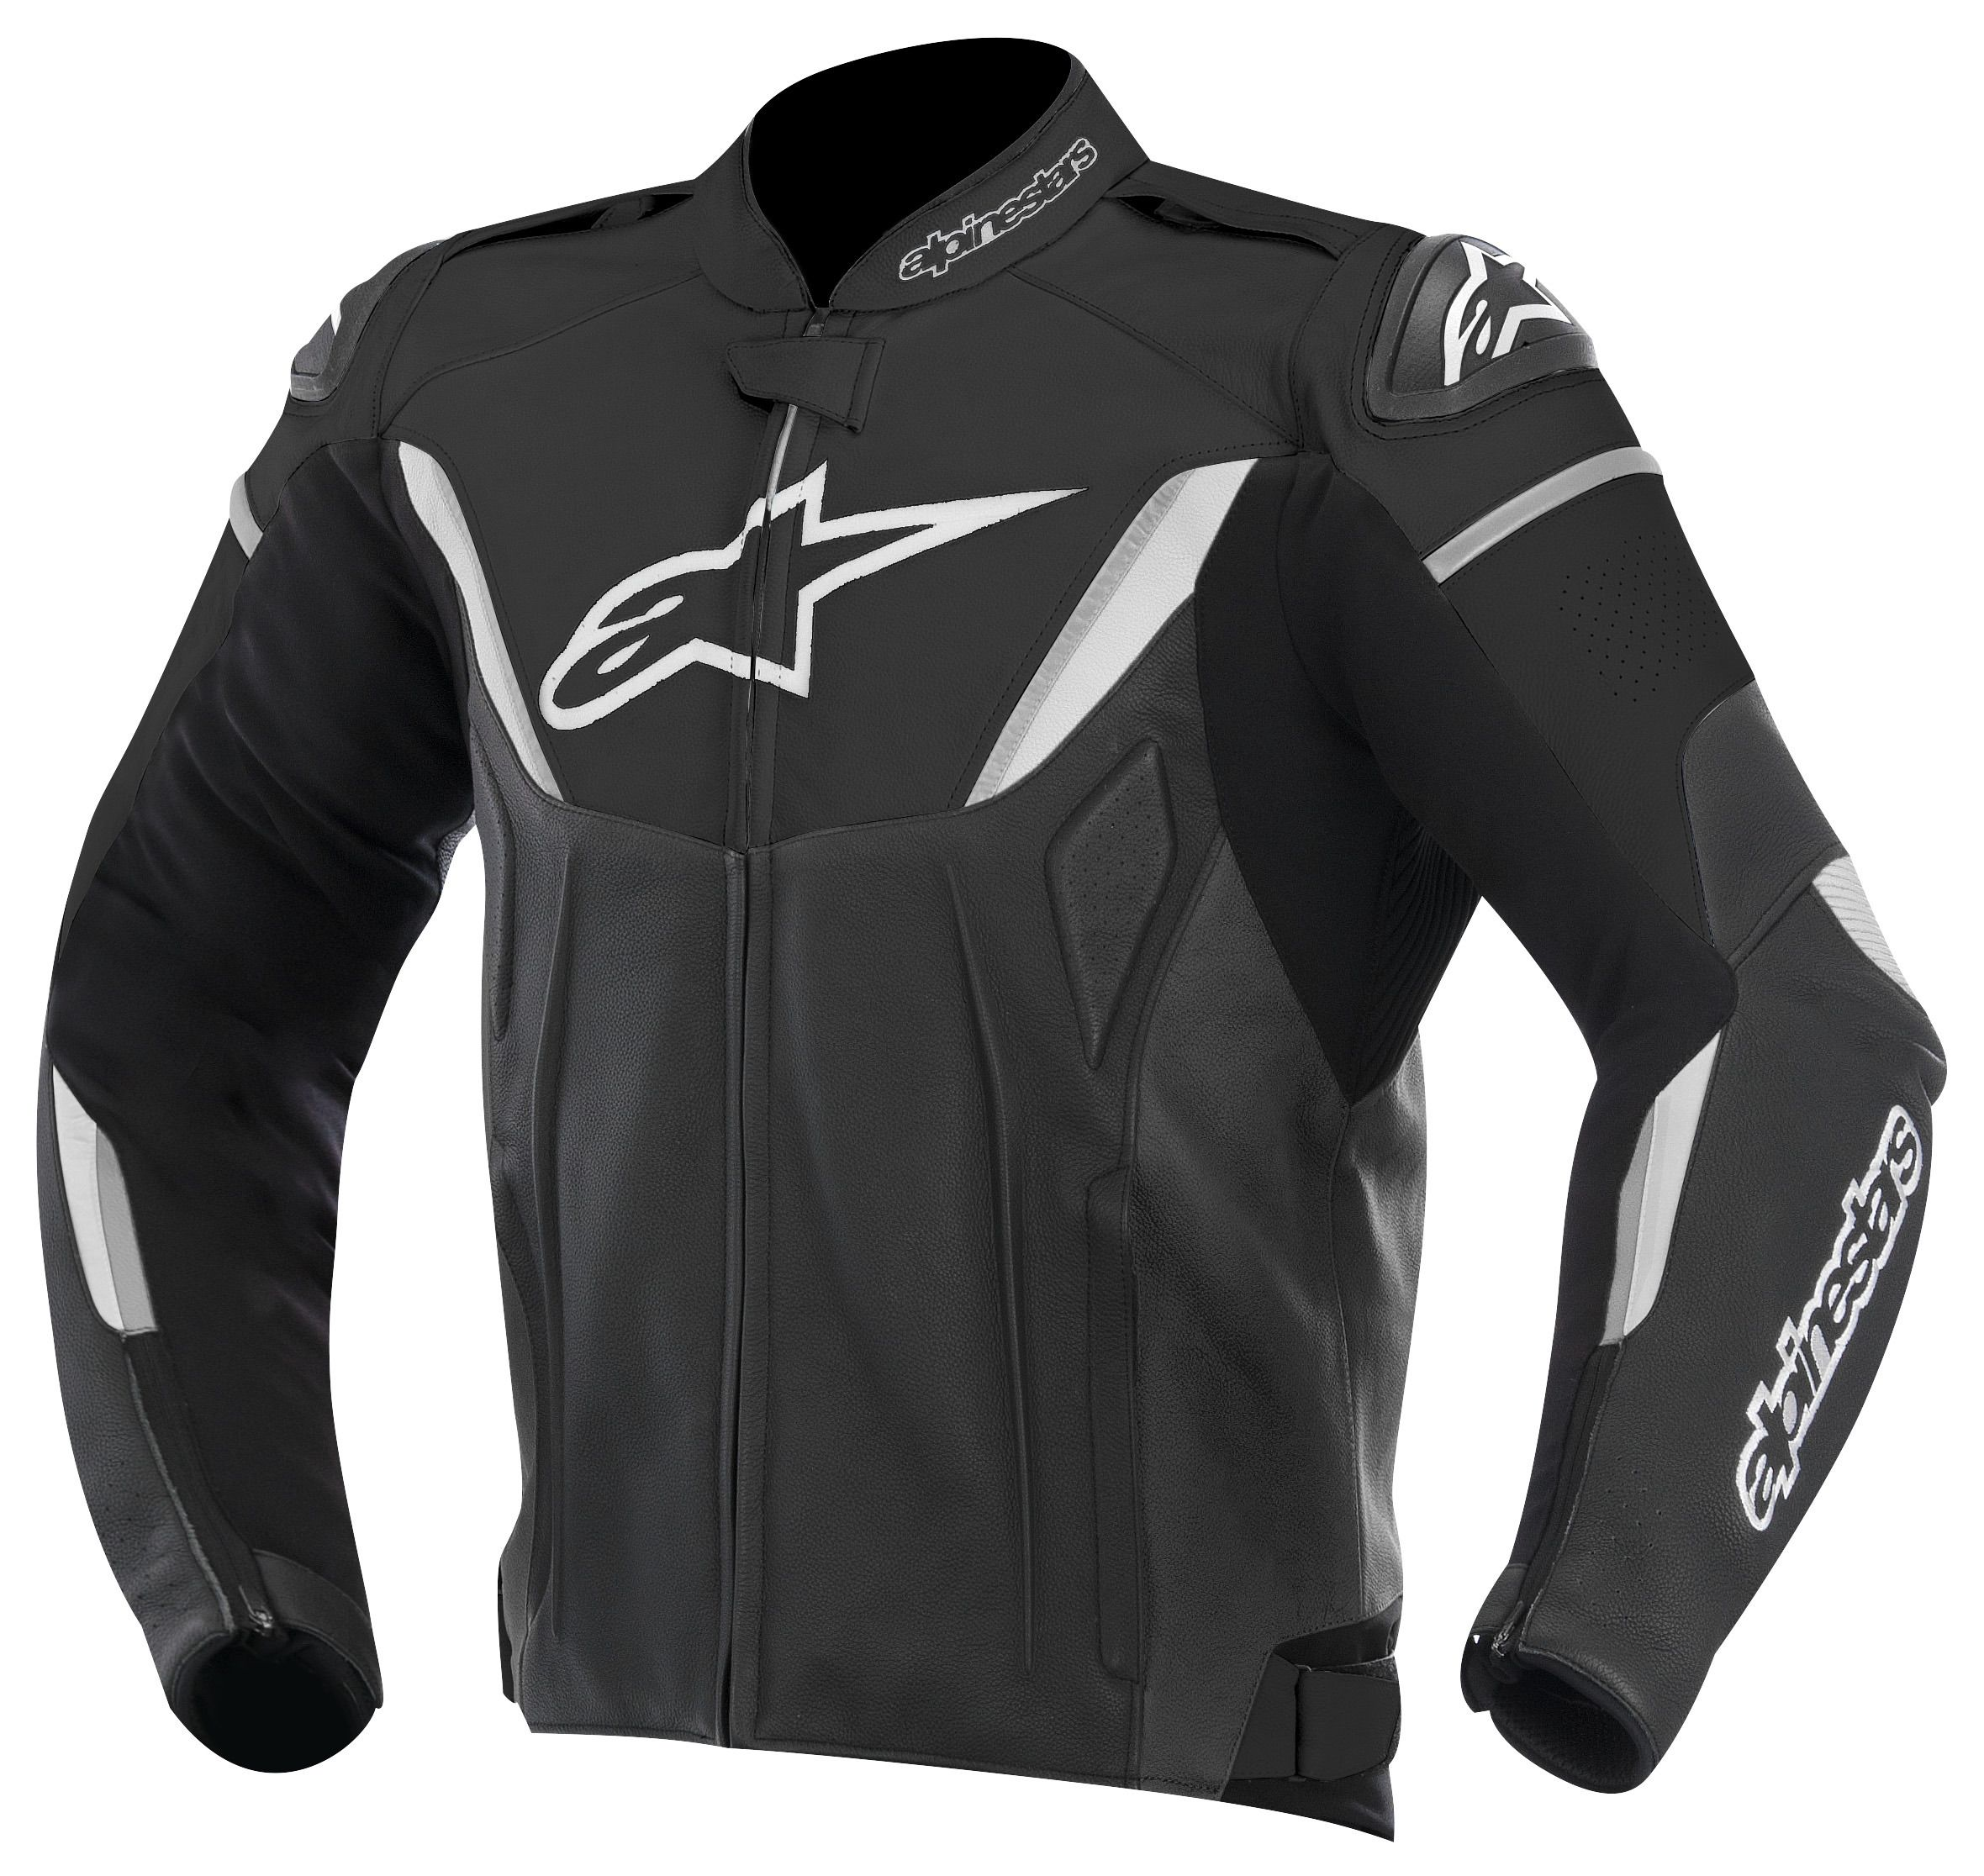 alpinestars_gpr_leather_jacket.jpg